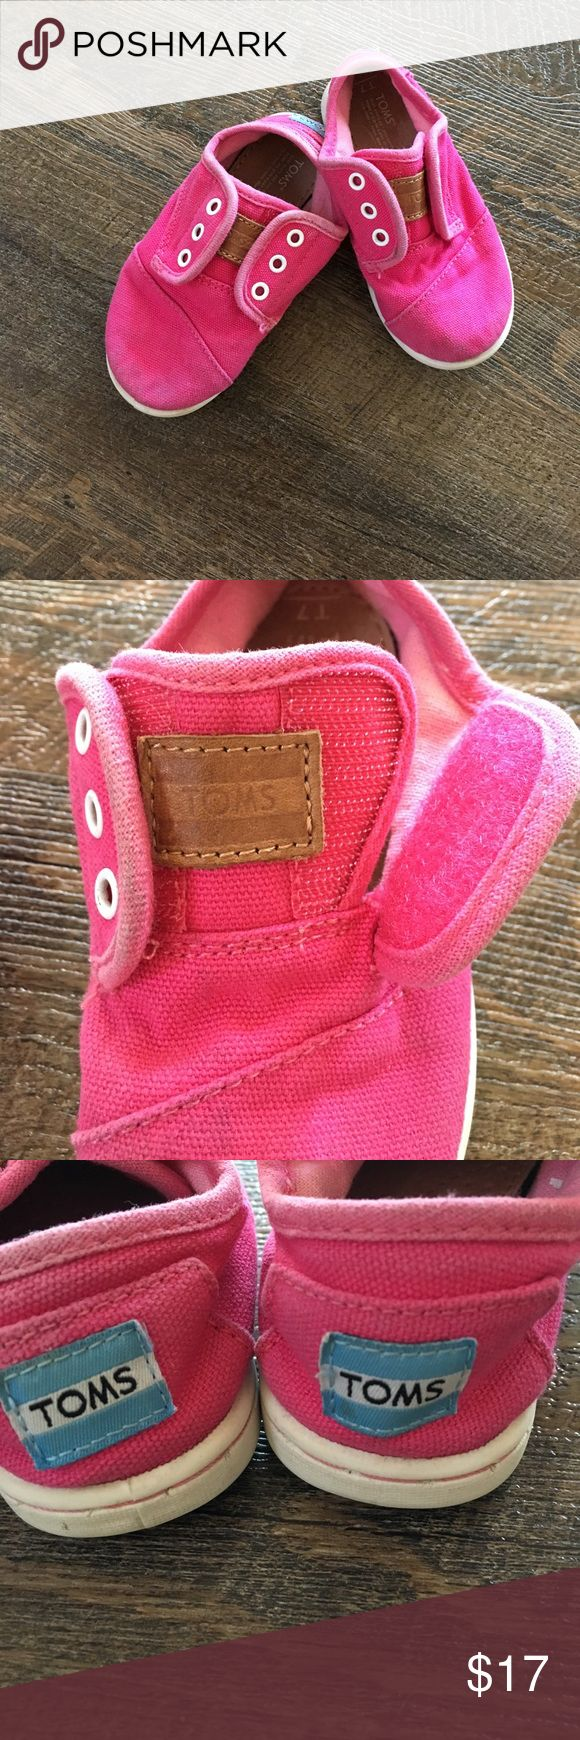 Tiny Toms Paseo Sneakers These Tiny Toms Paseo sneakers a such a cute color. They are in great condition. They have a Velcro opening, making it easy for toddlers to slip on and off. Toms Shoes Sneakers